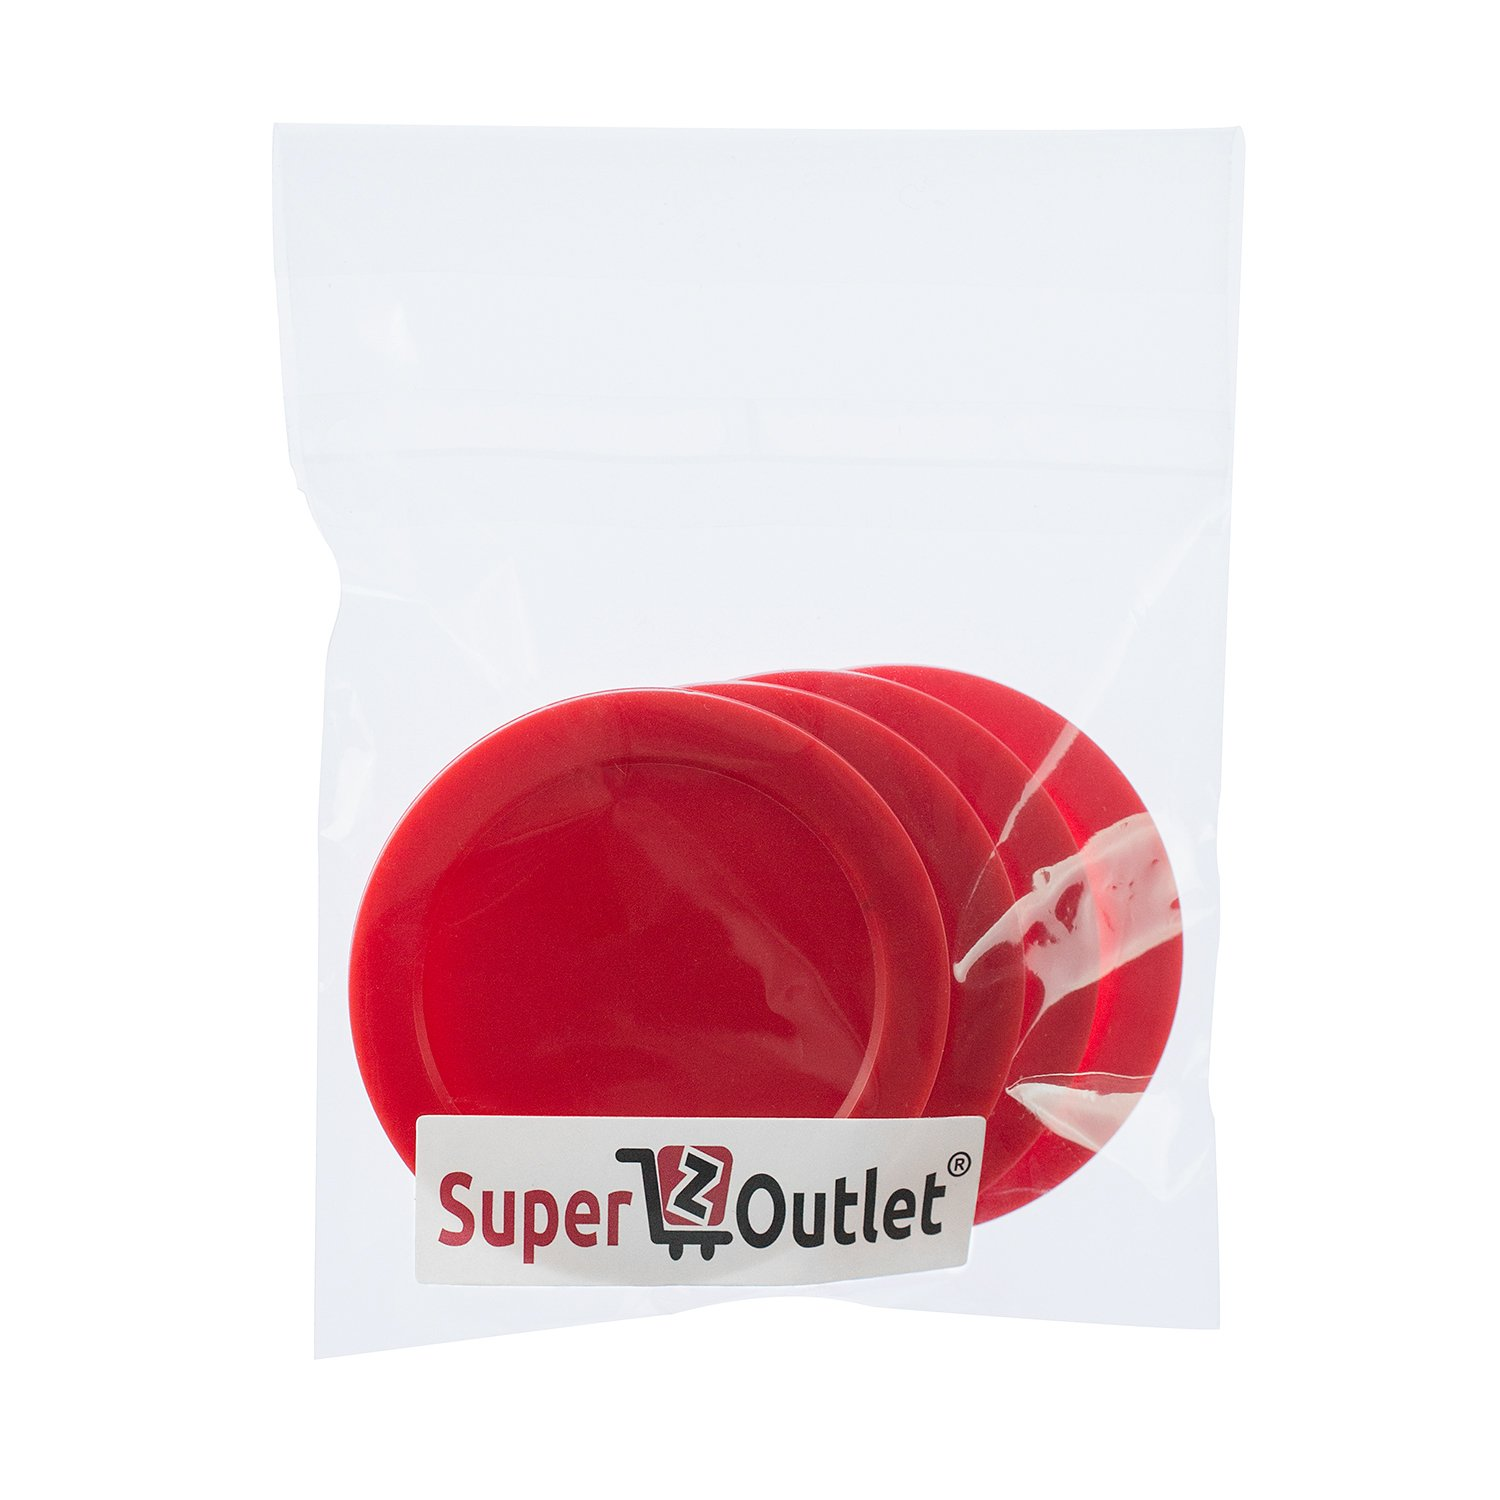 Super Z Outlet Home Air Hockey Red Replacement 2.5'' Pucks for Game Tables, Equipment, Accessories (4 Pack)